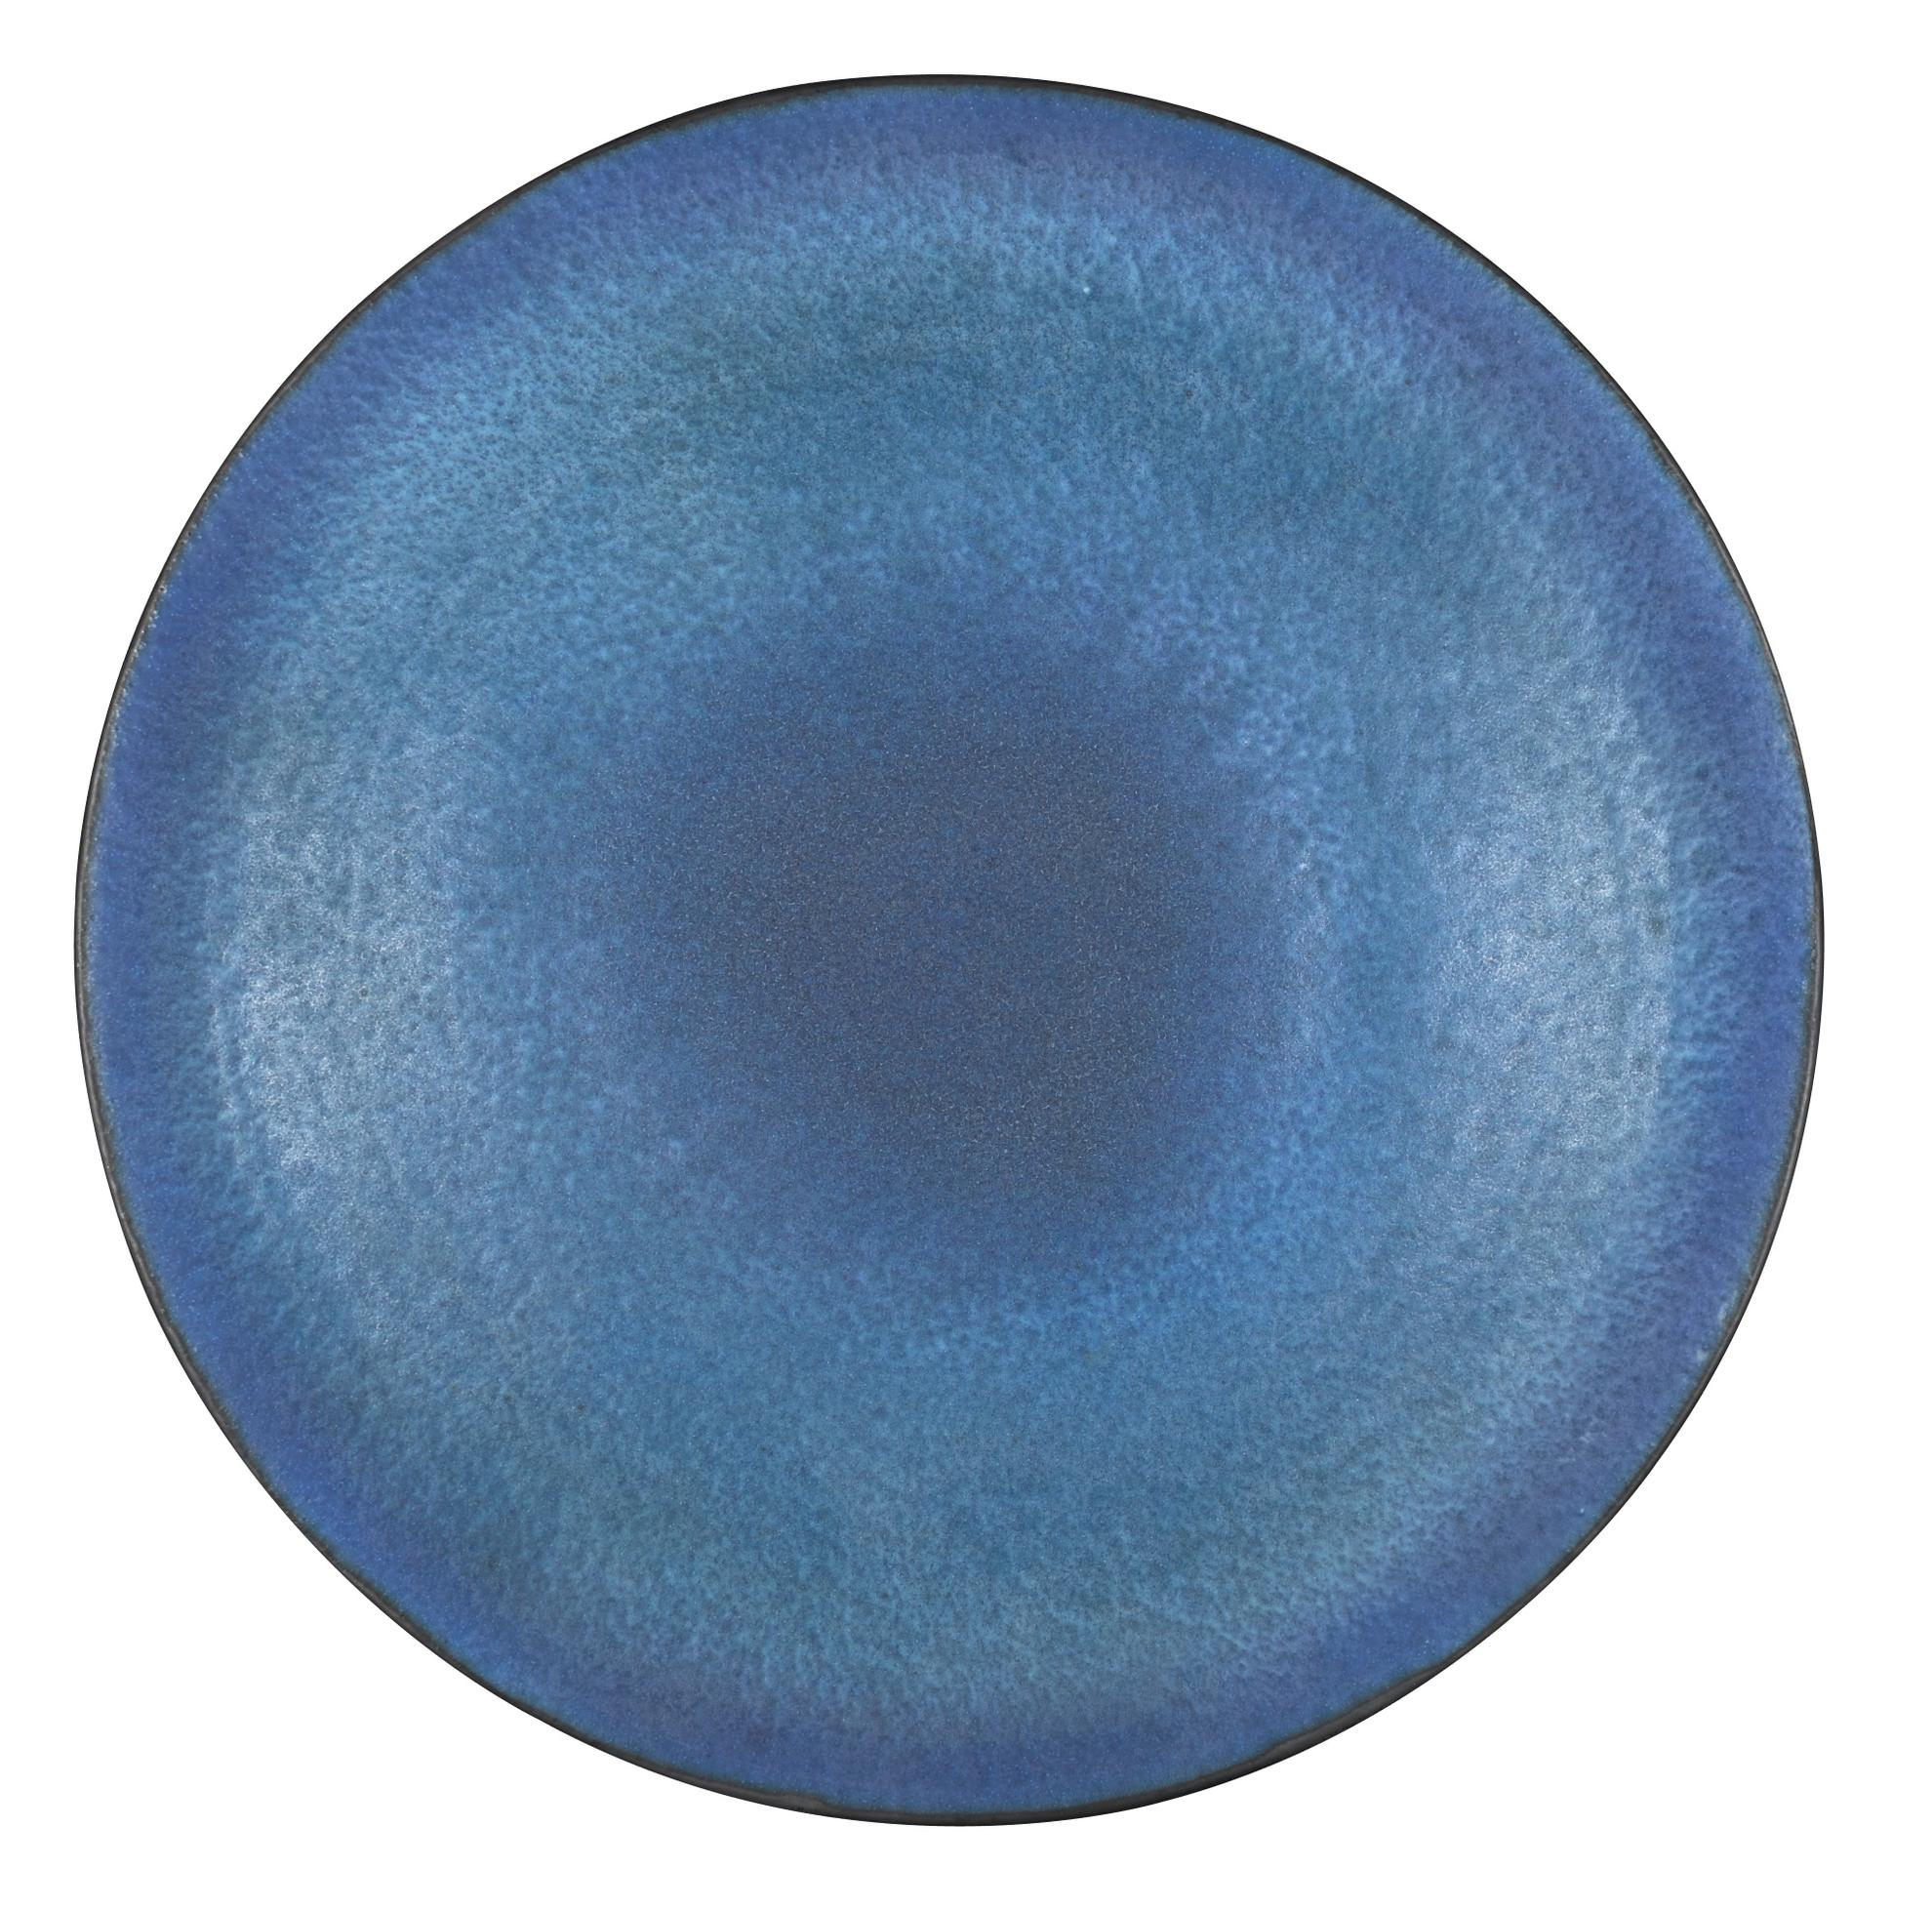 Abdo Nagi-Large Blue Charger-